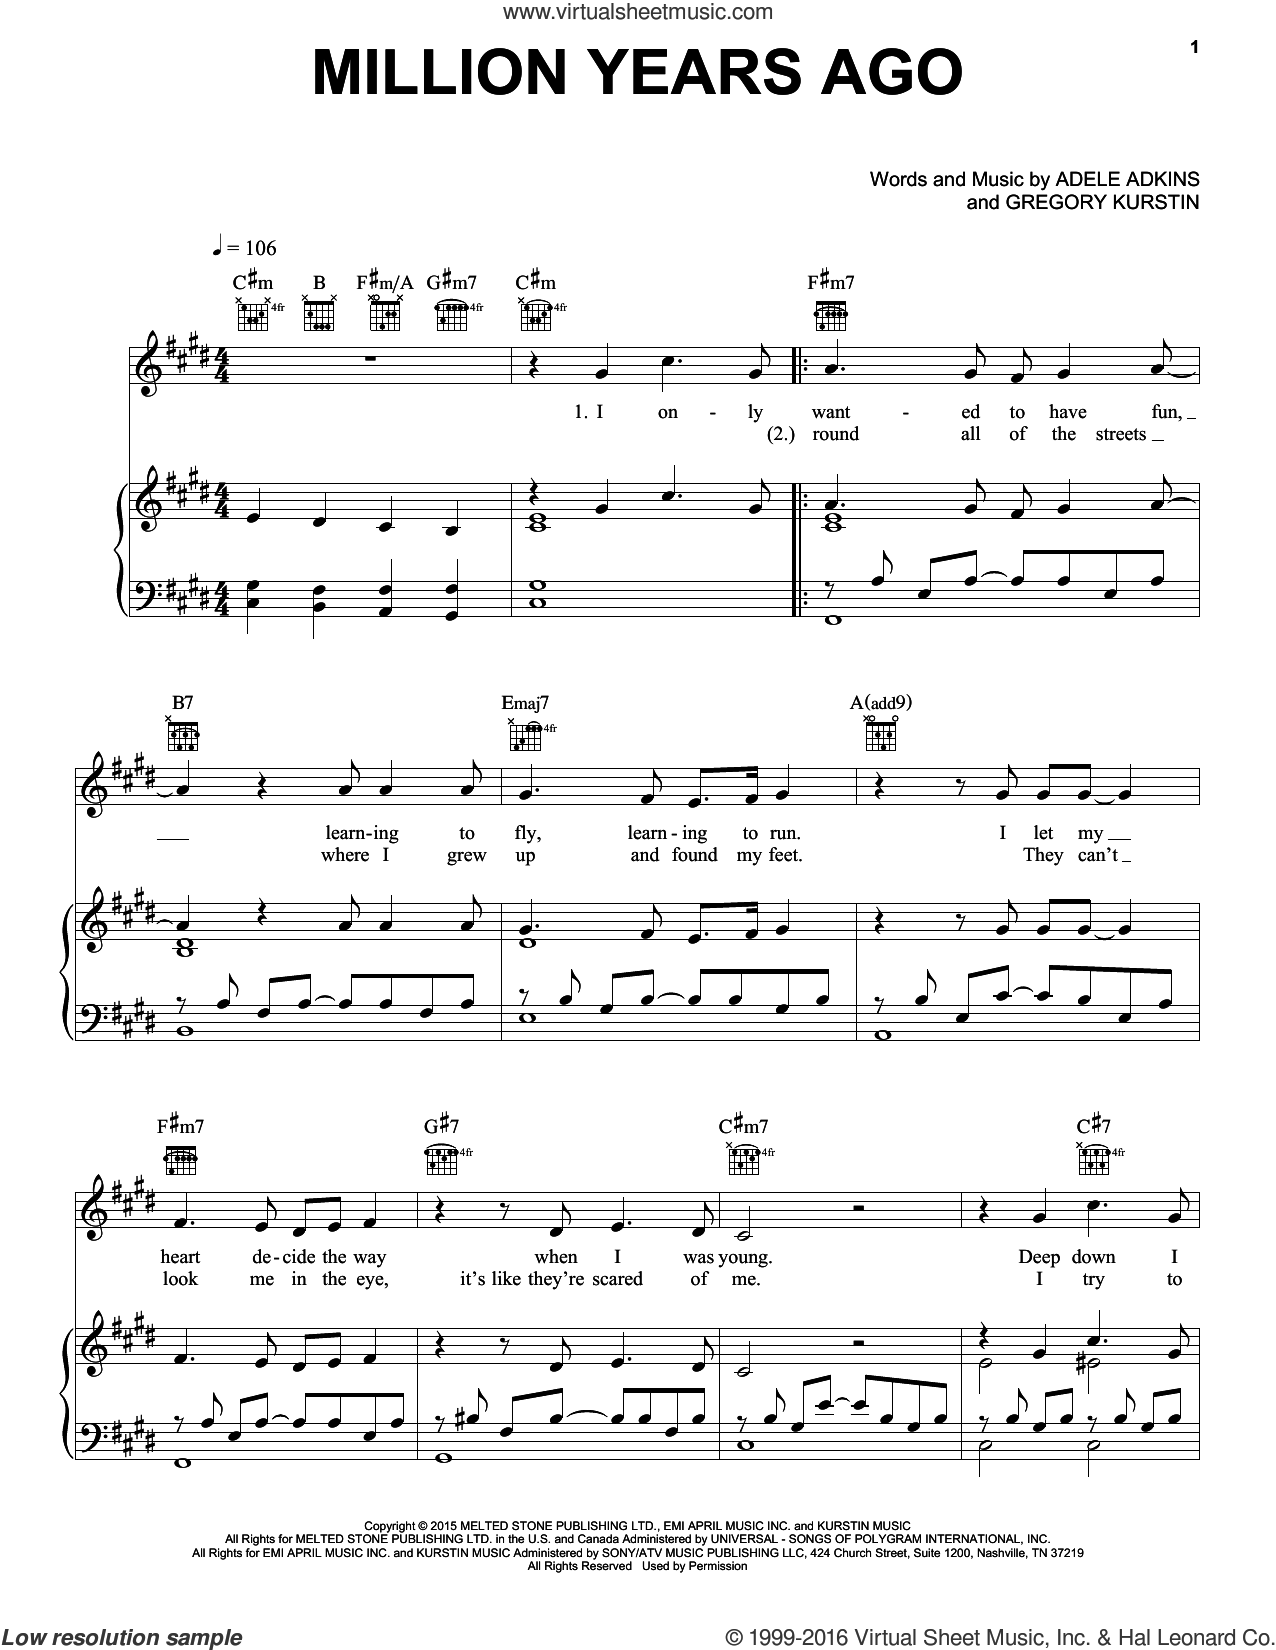 Million Years Ago sheet music for voice, piano or guitar by Adele, Adele Adkins and Gregory Kurstin, intermediate skill level